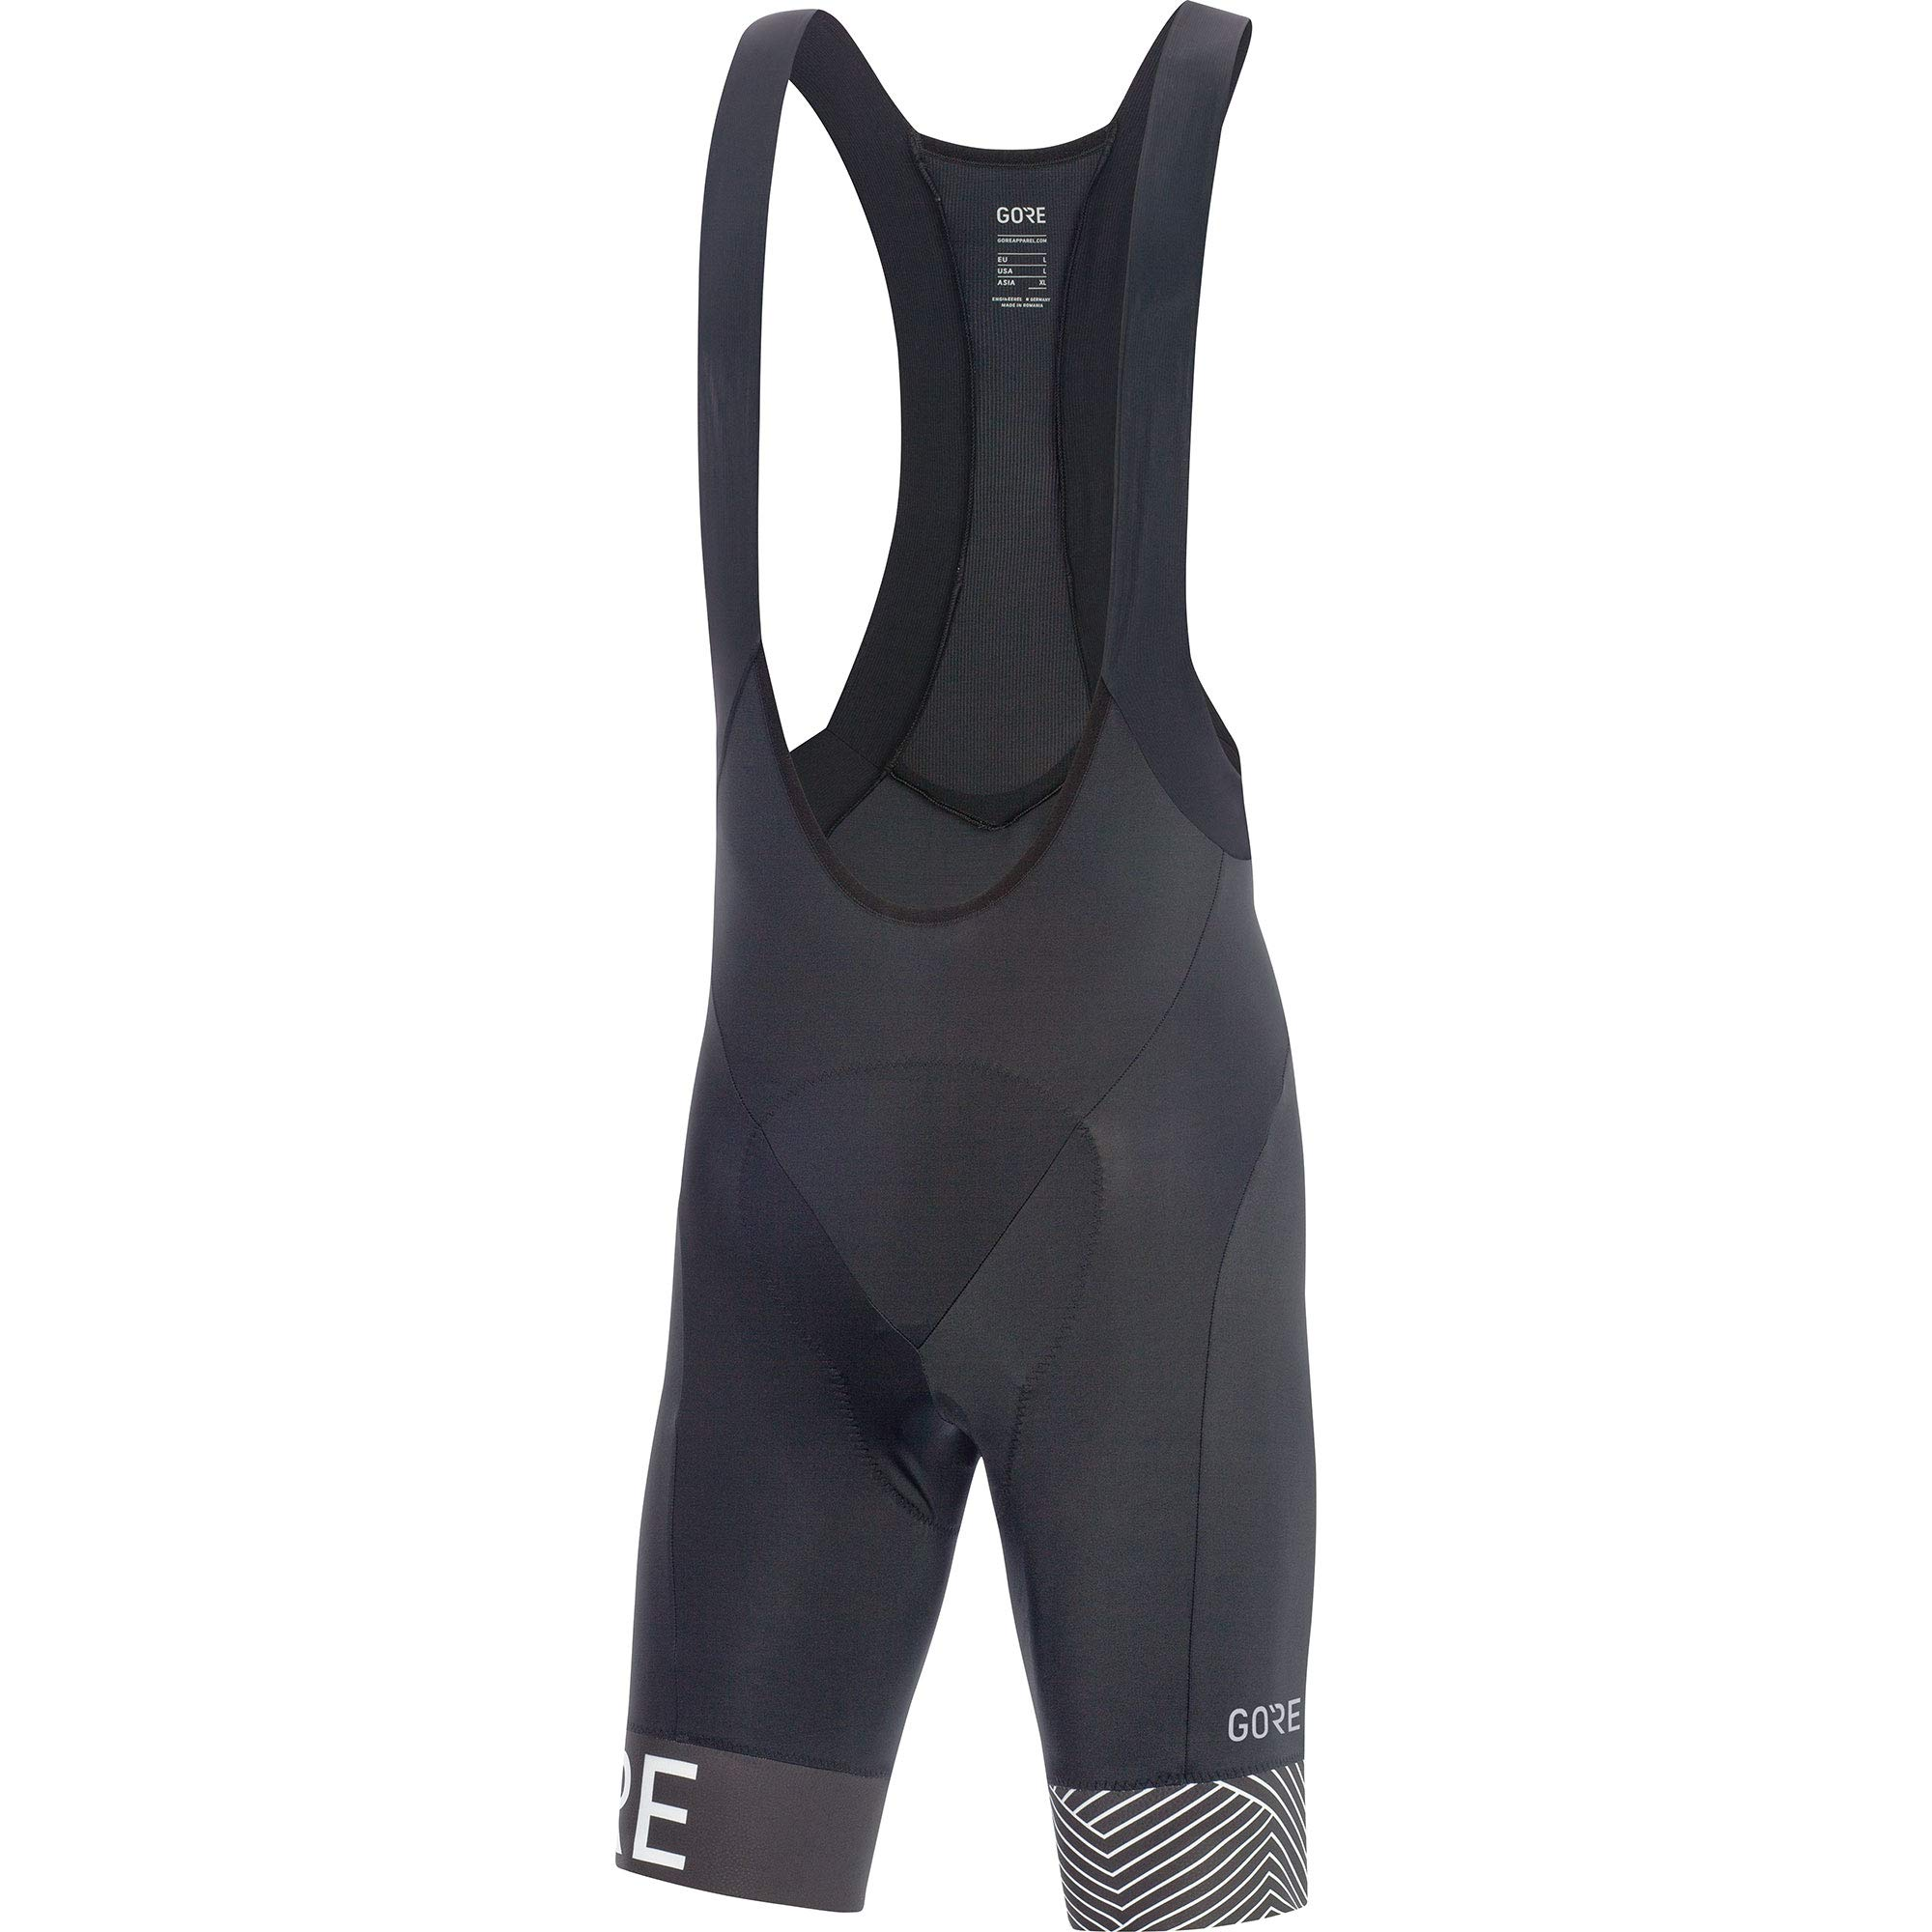 GORE Wear C5 Men's Short Cycling Bib Shorts With Seat Insert, S, Black/White